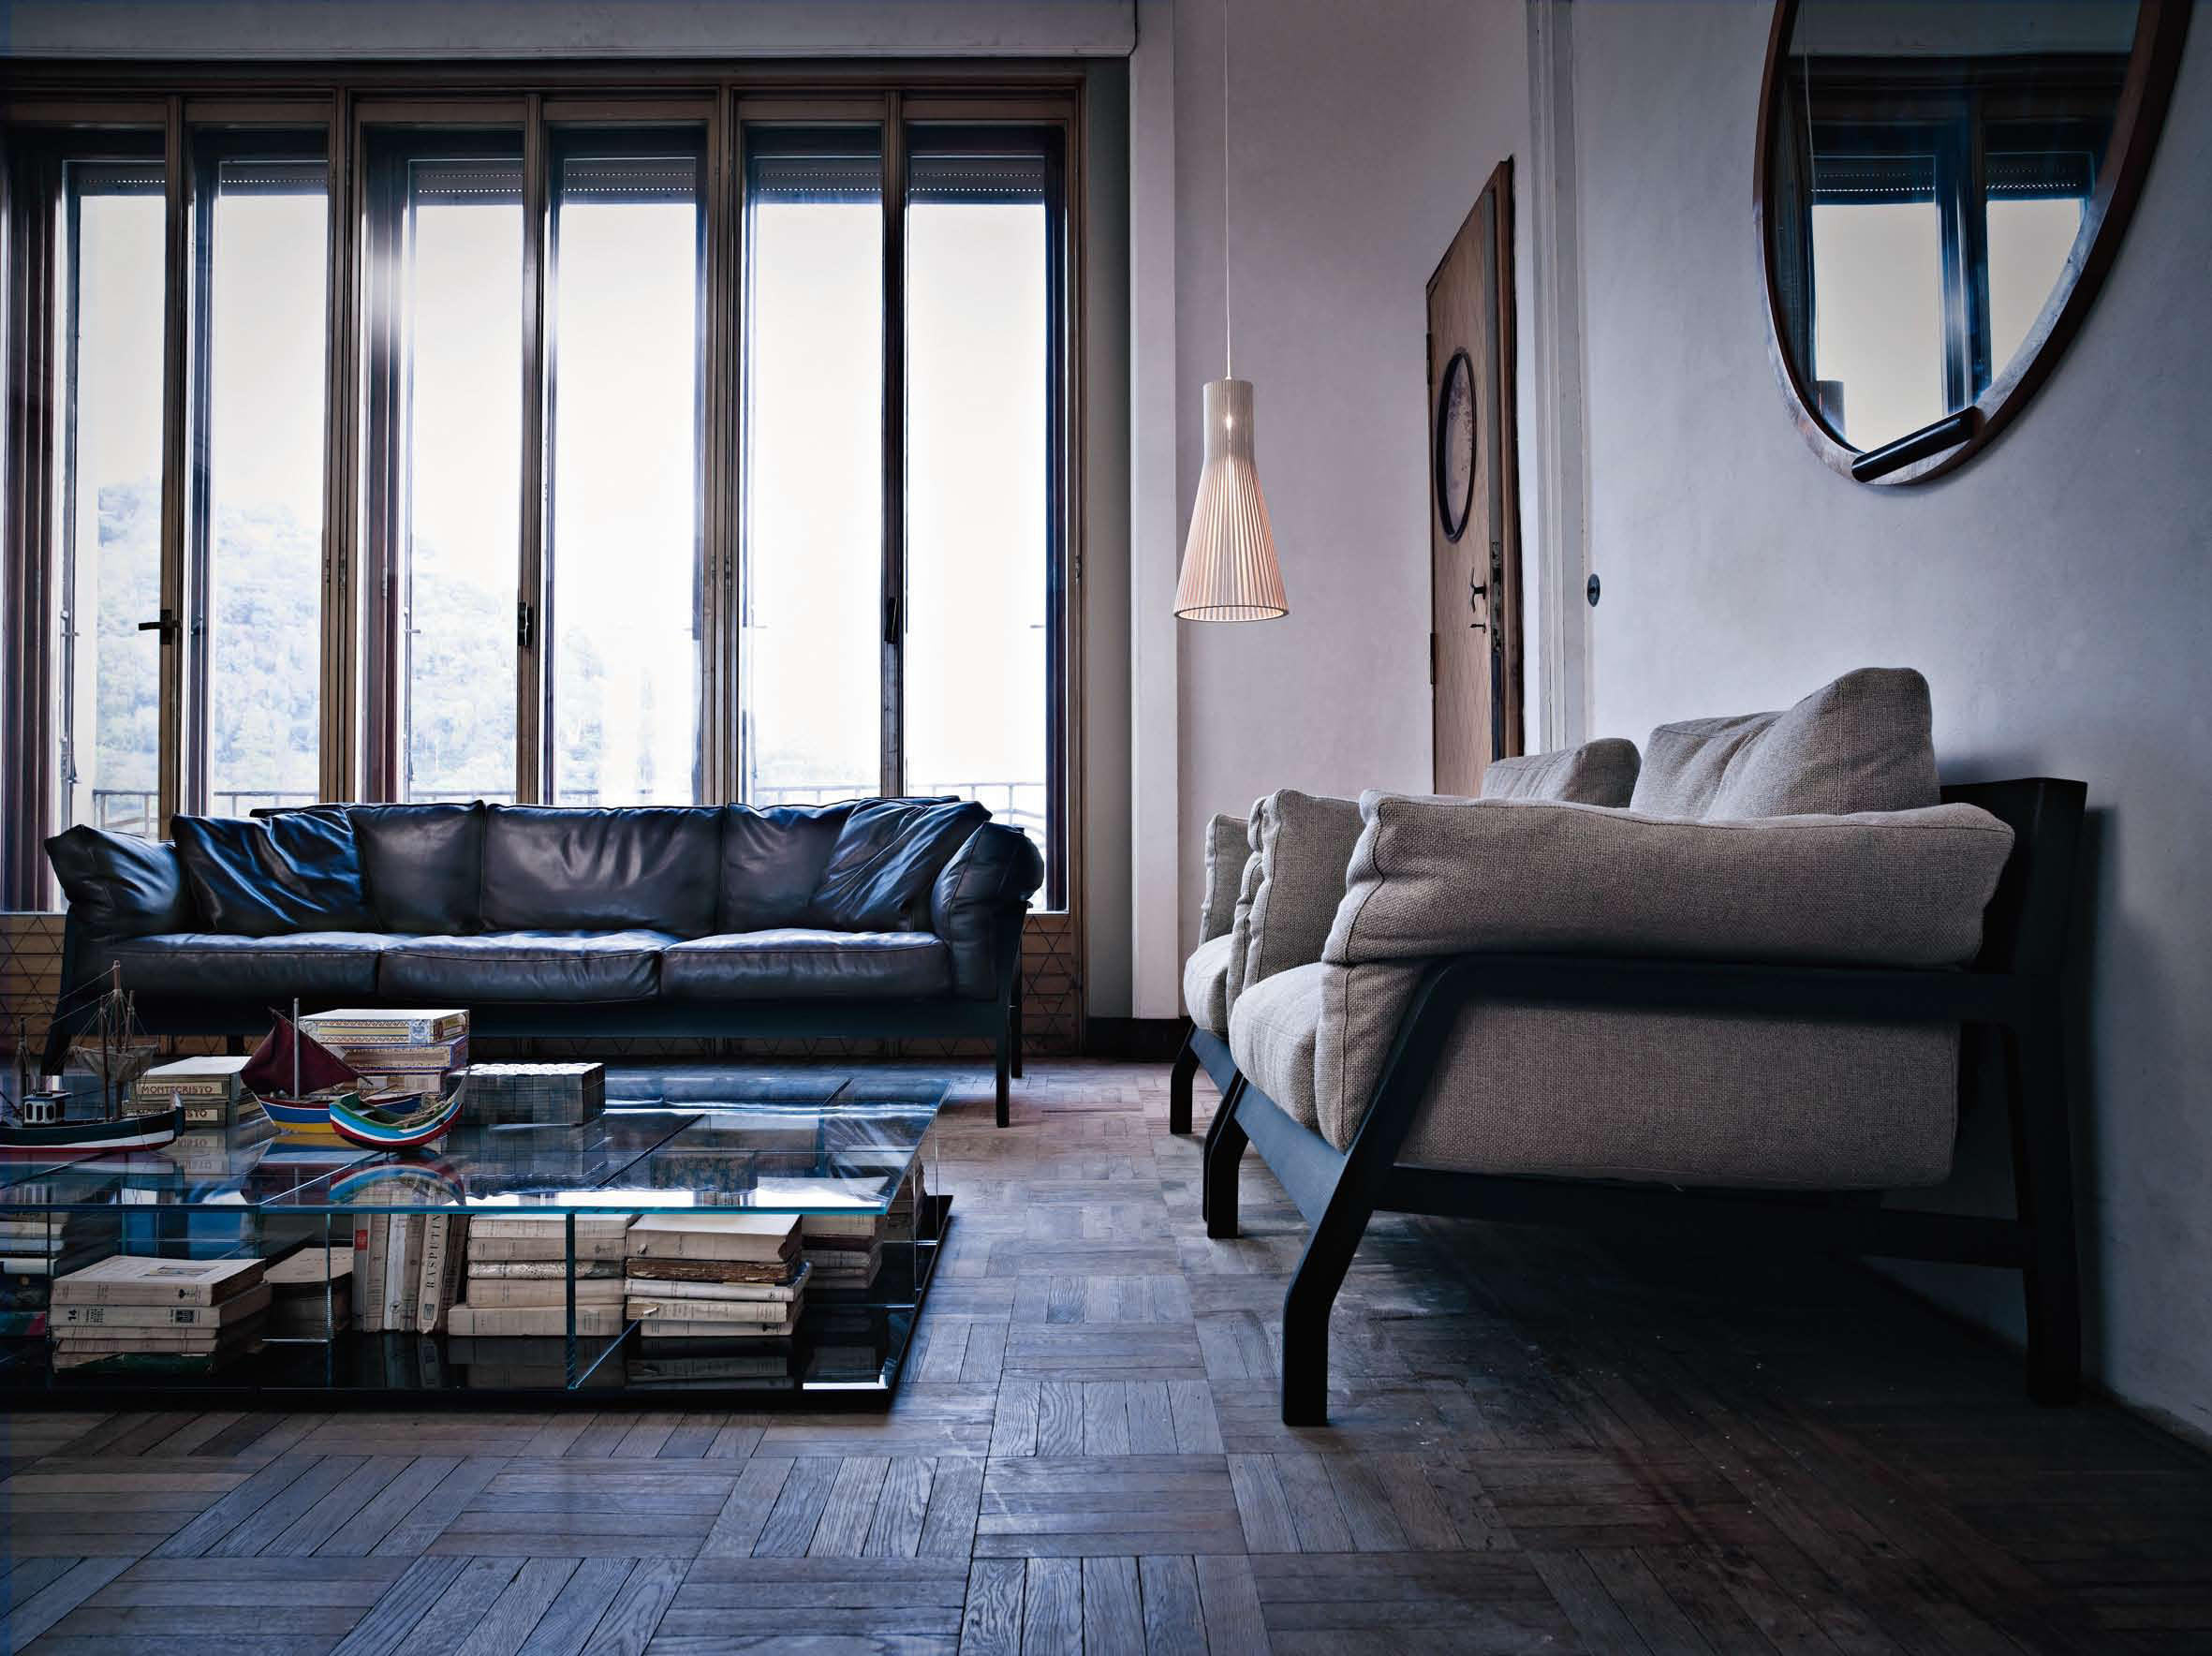 285 Eloro Chaise Longues From Cassina Architonic